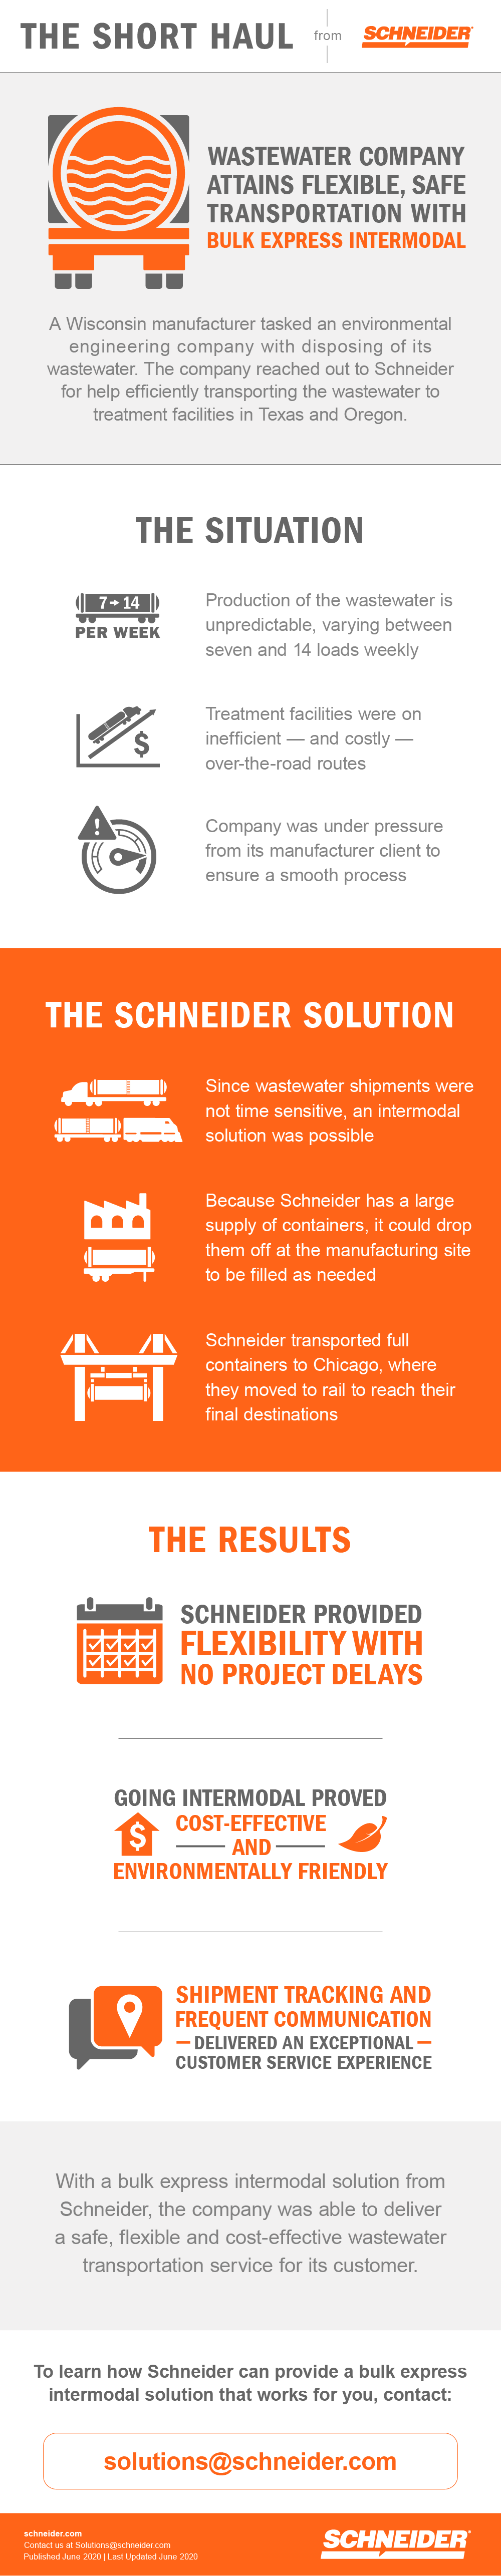 Infographic: Wastewater Company Attains Flexible, Safe Transportation with Bulk Express Intermodal